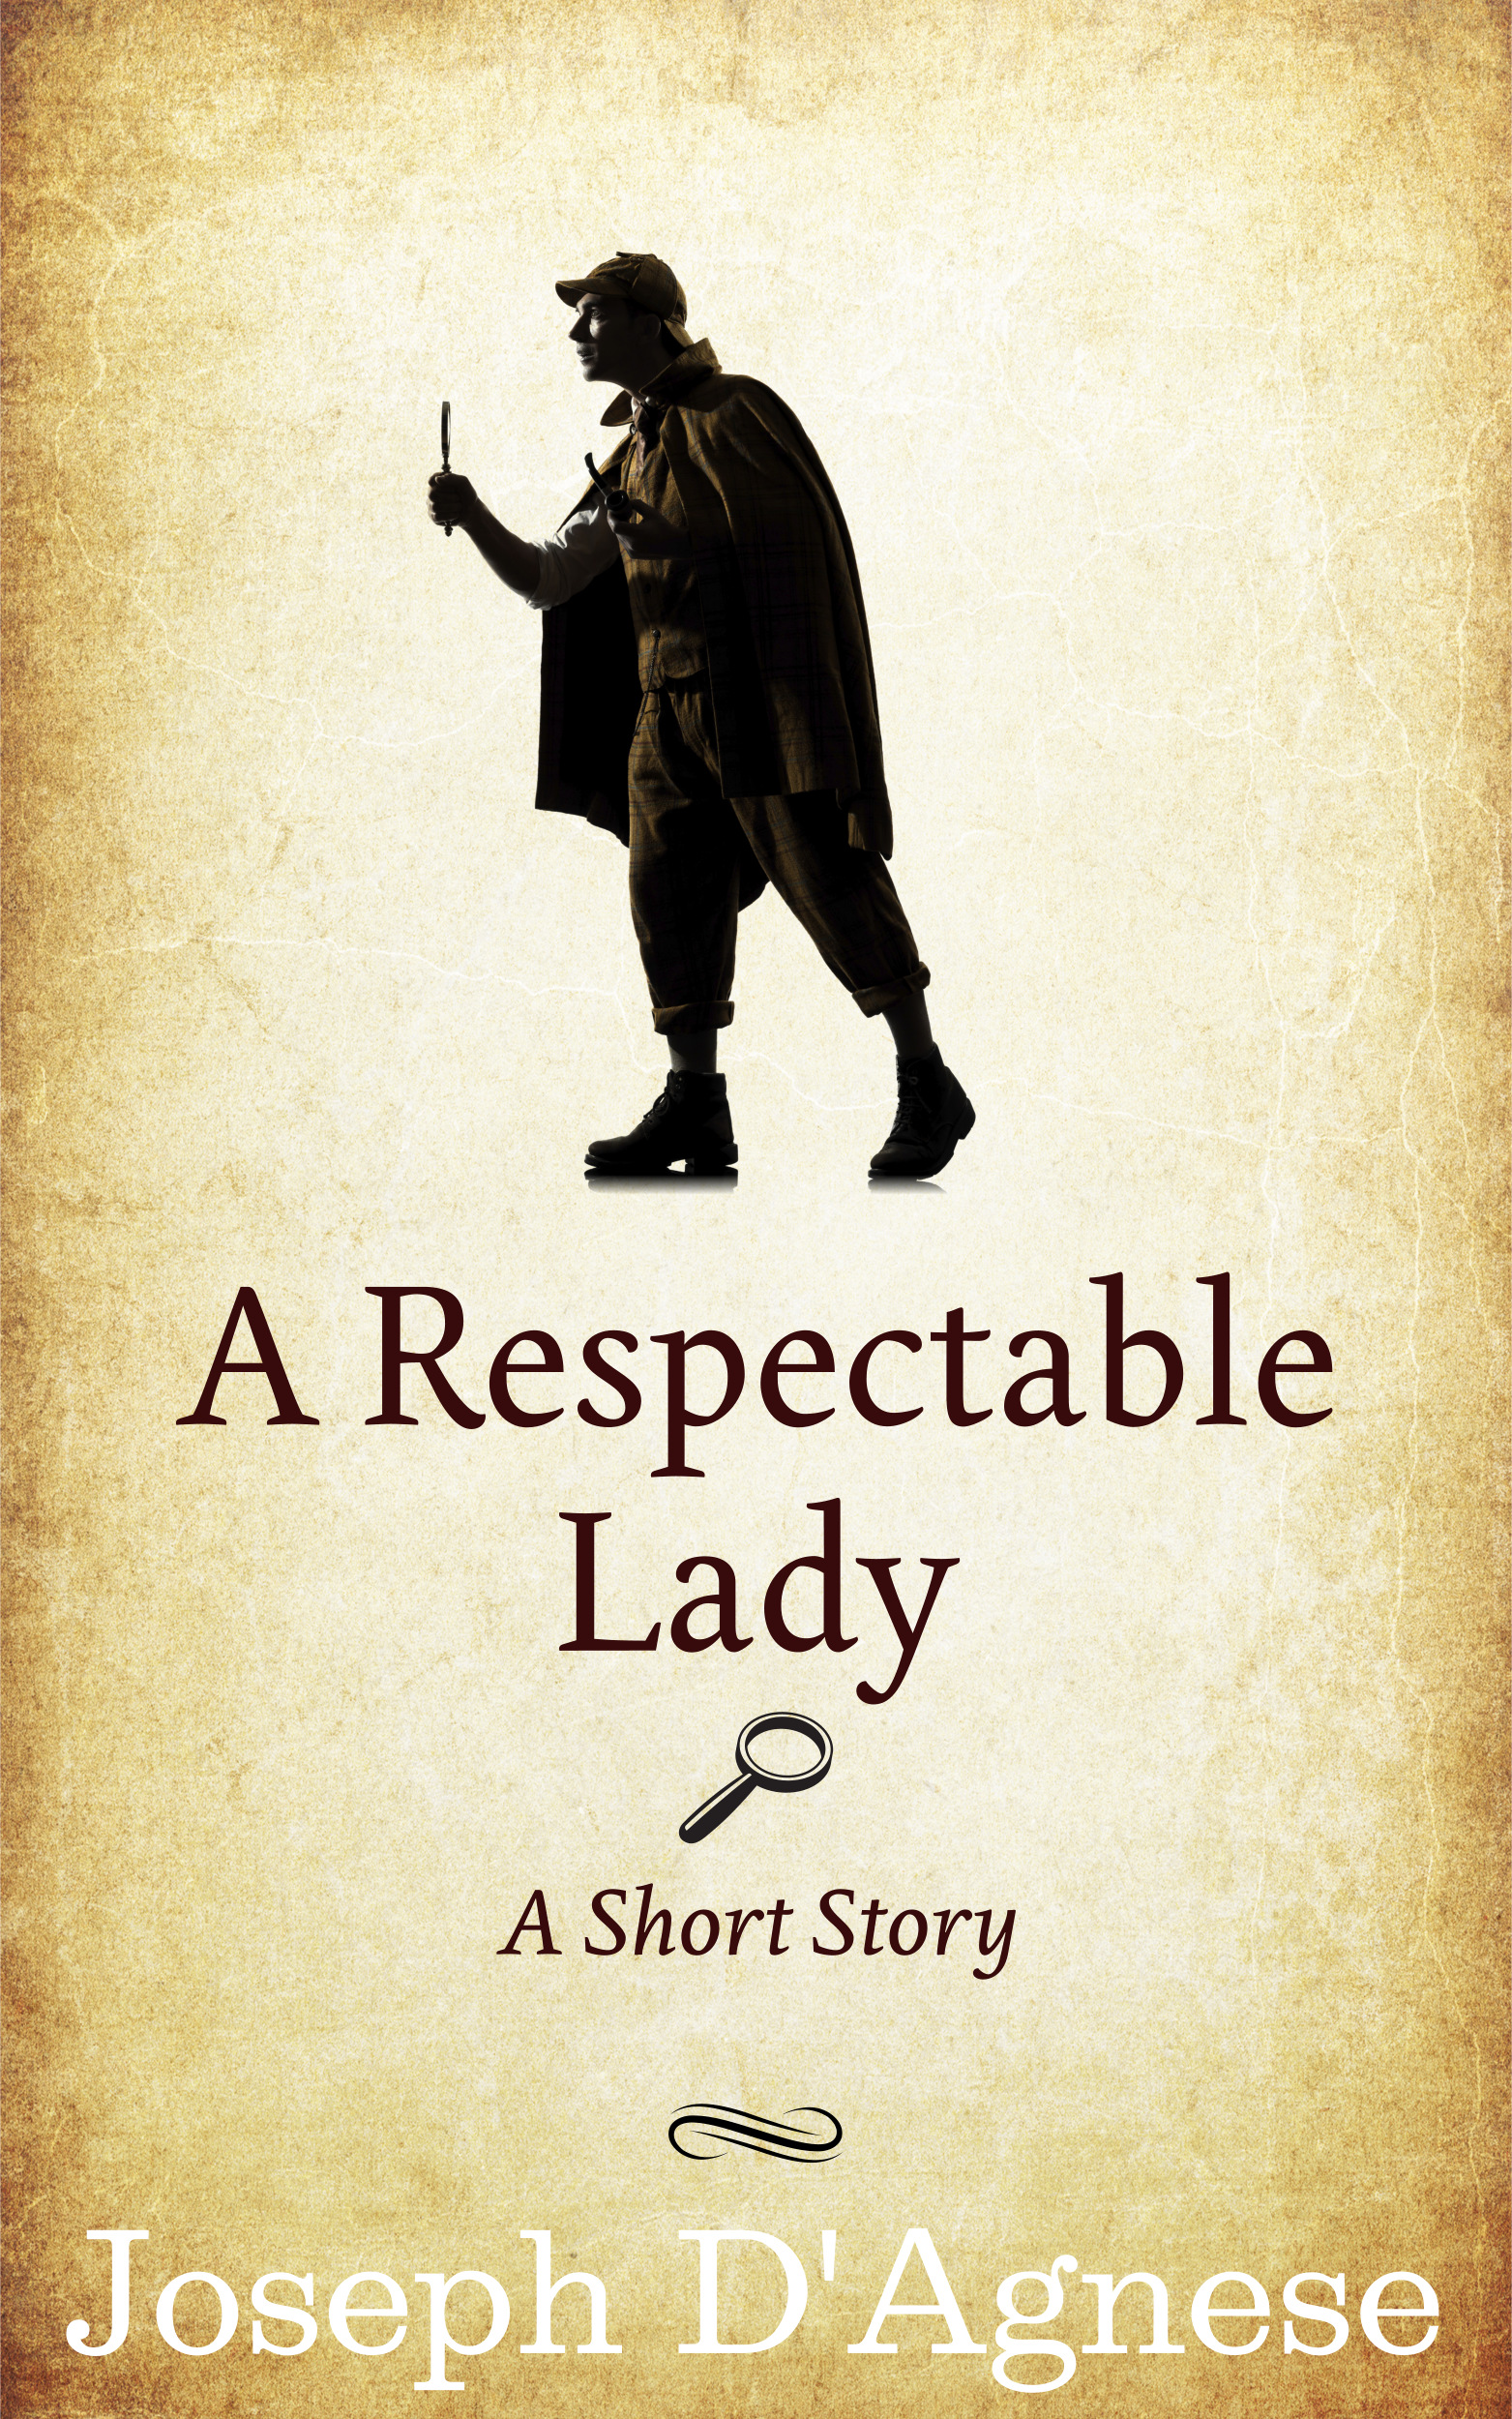 A Respectable Lady by Joseph D'Agnese